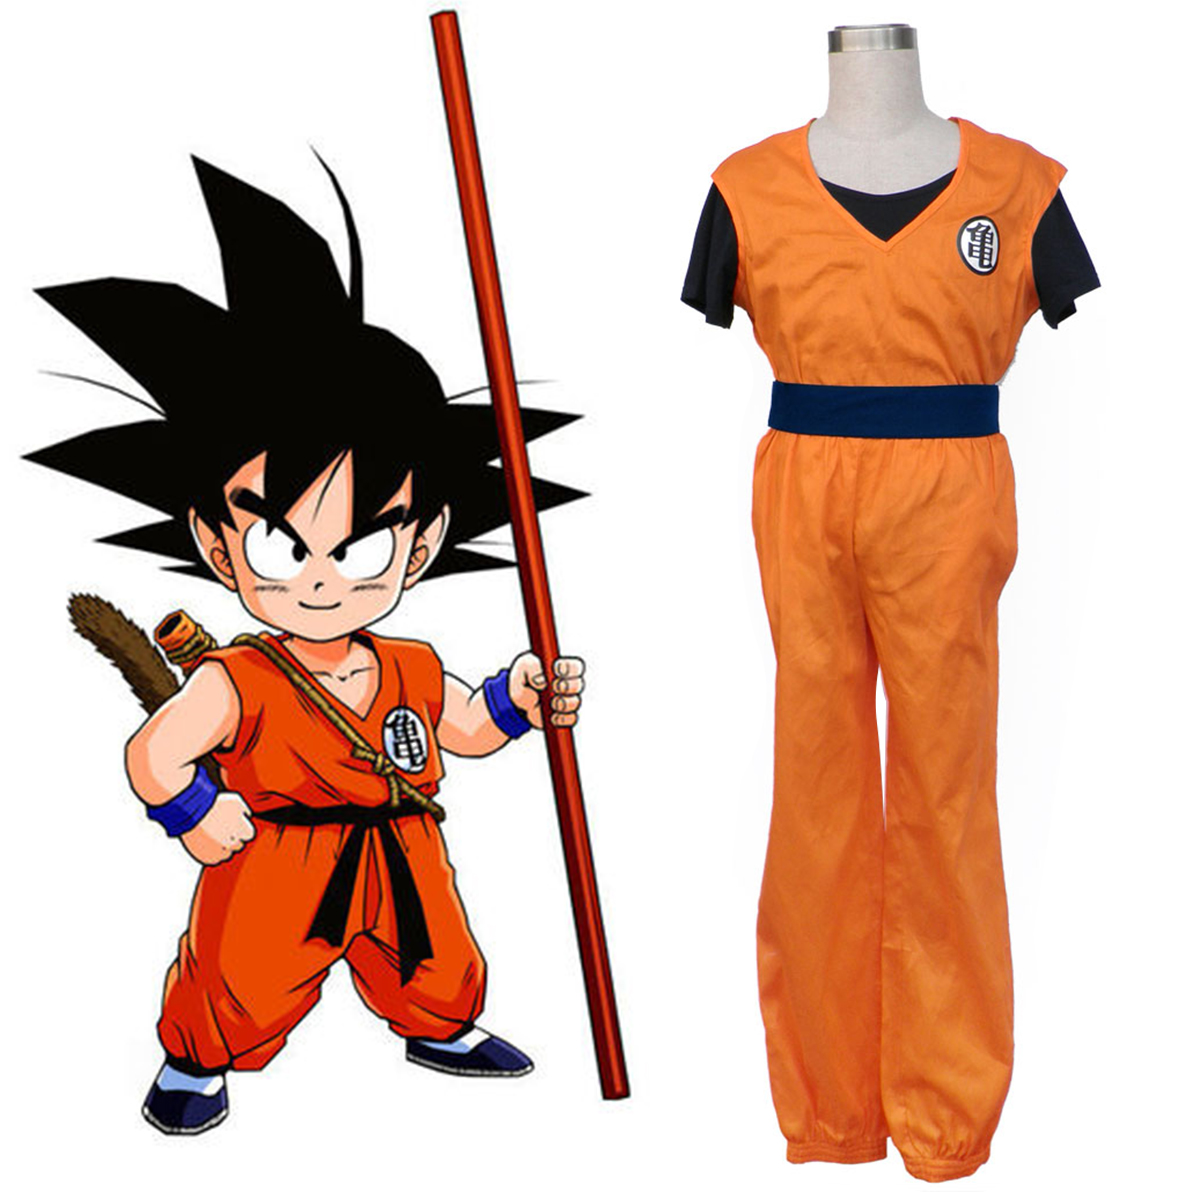 Dragon Ball Son Goku 1 Anime Cosplay Costumes Outfit